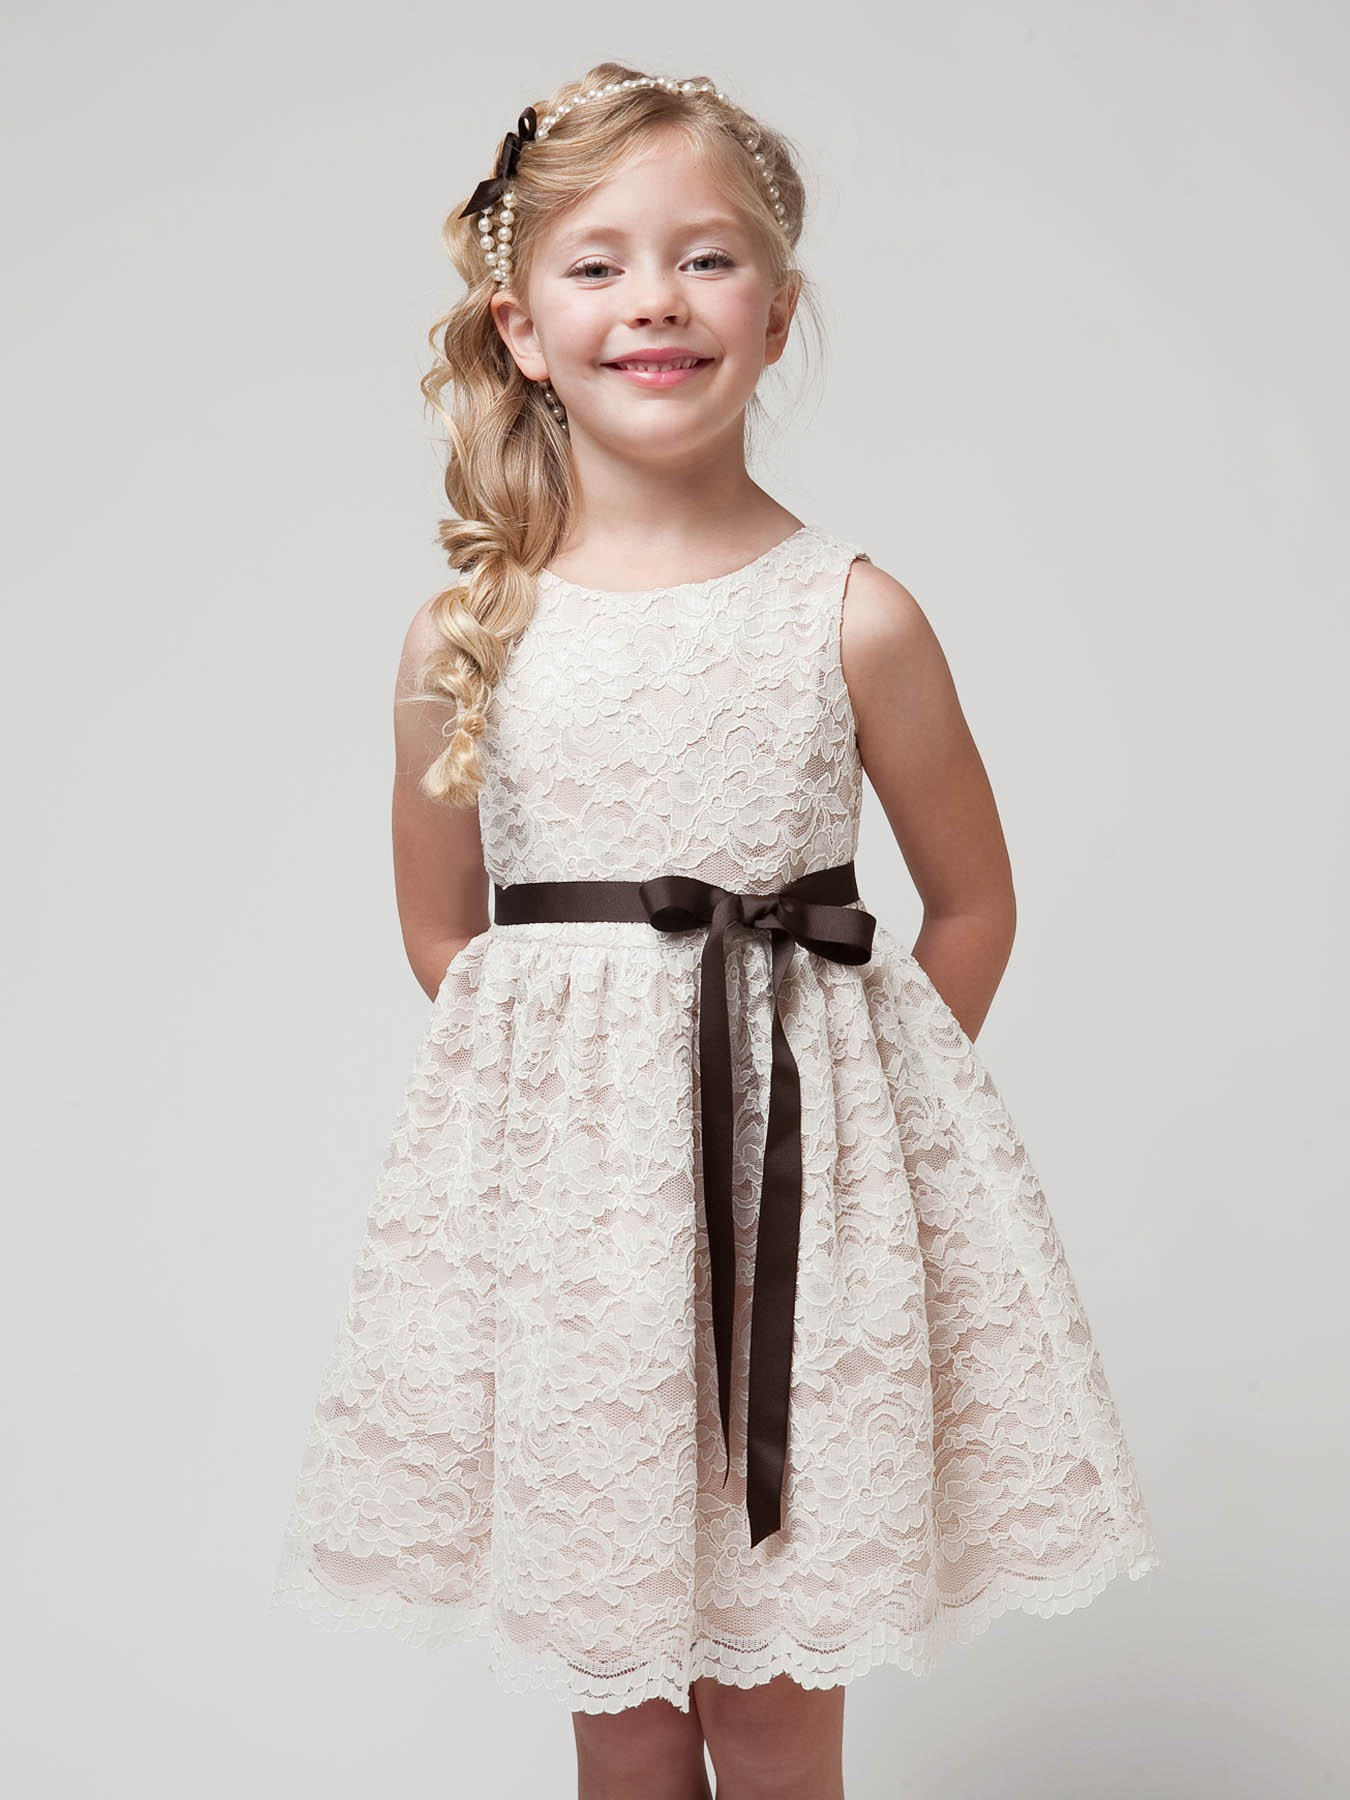 Ivory lace junior bridesmaid dressesbridesmaid dressesdressesss ivory lace junior bridesmaid dresses ombrellifo Gallery